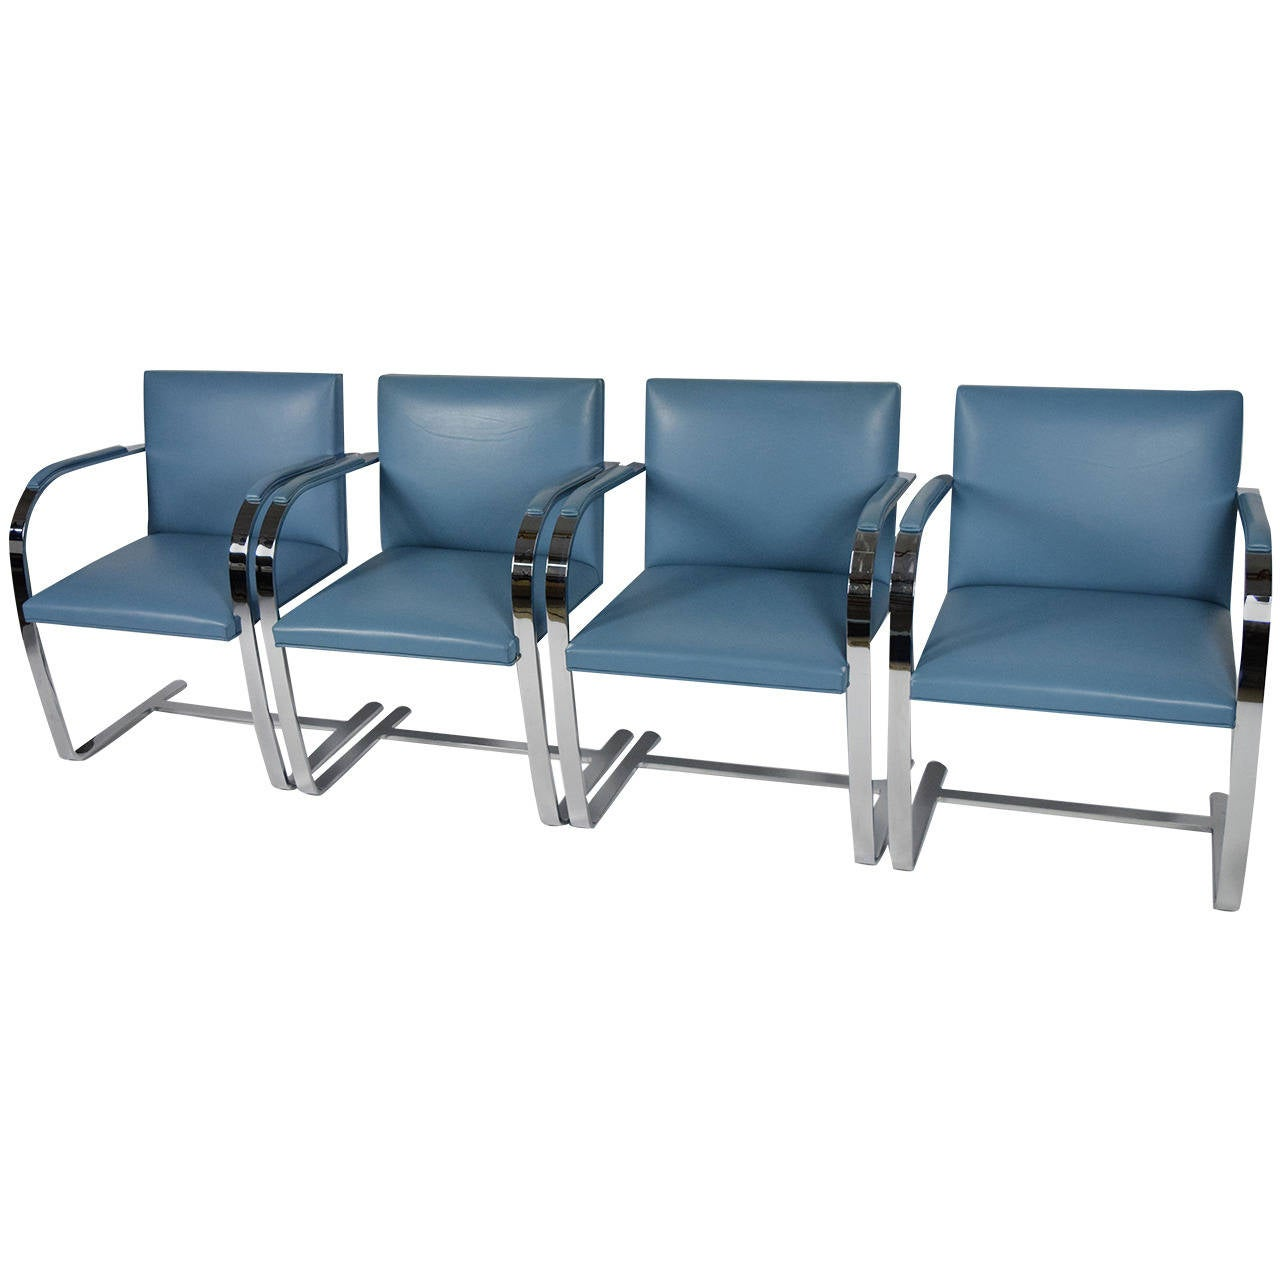 Set of Four Knoll Flat Bar Brno Chairs in Blue Leather at